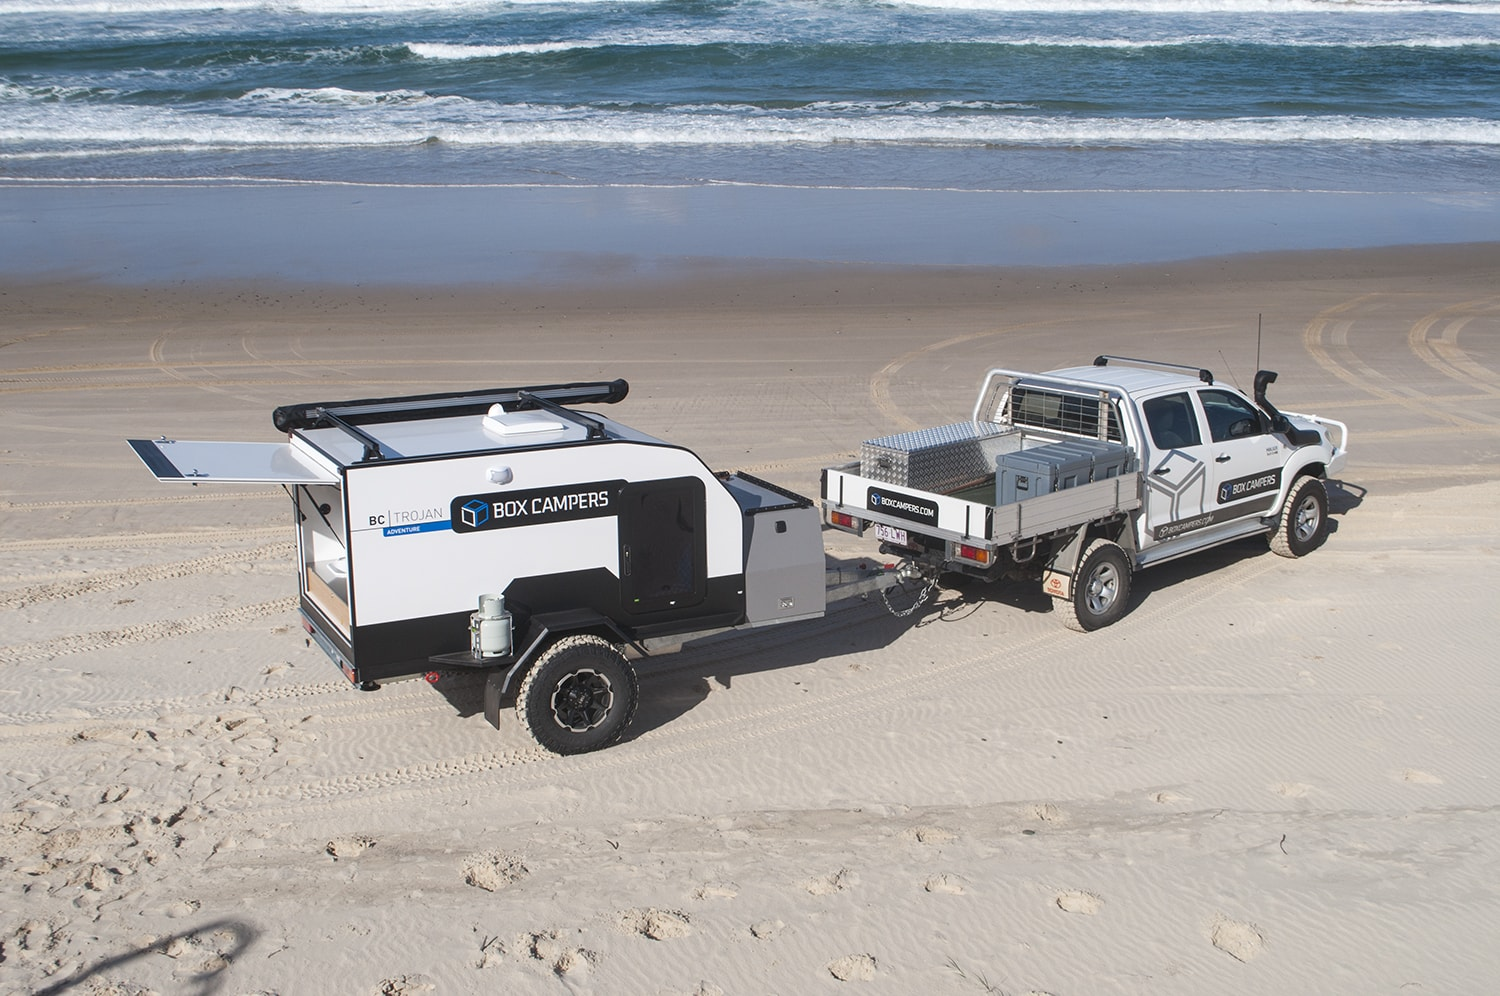 Box Campers Press Release On The Road Ford Raptor With Camper S Bc Trojan Towed